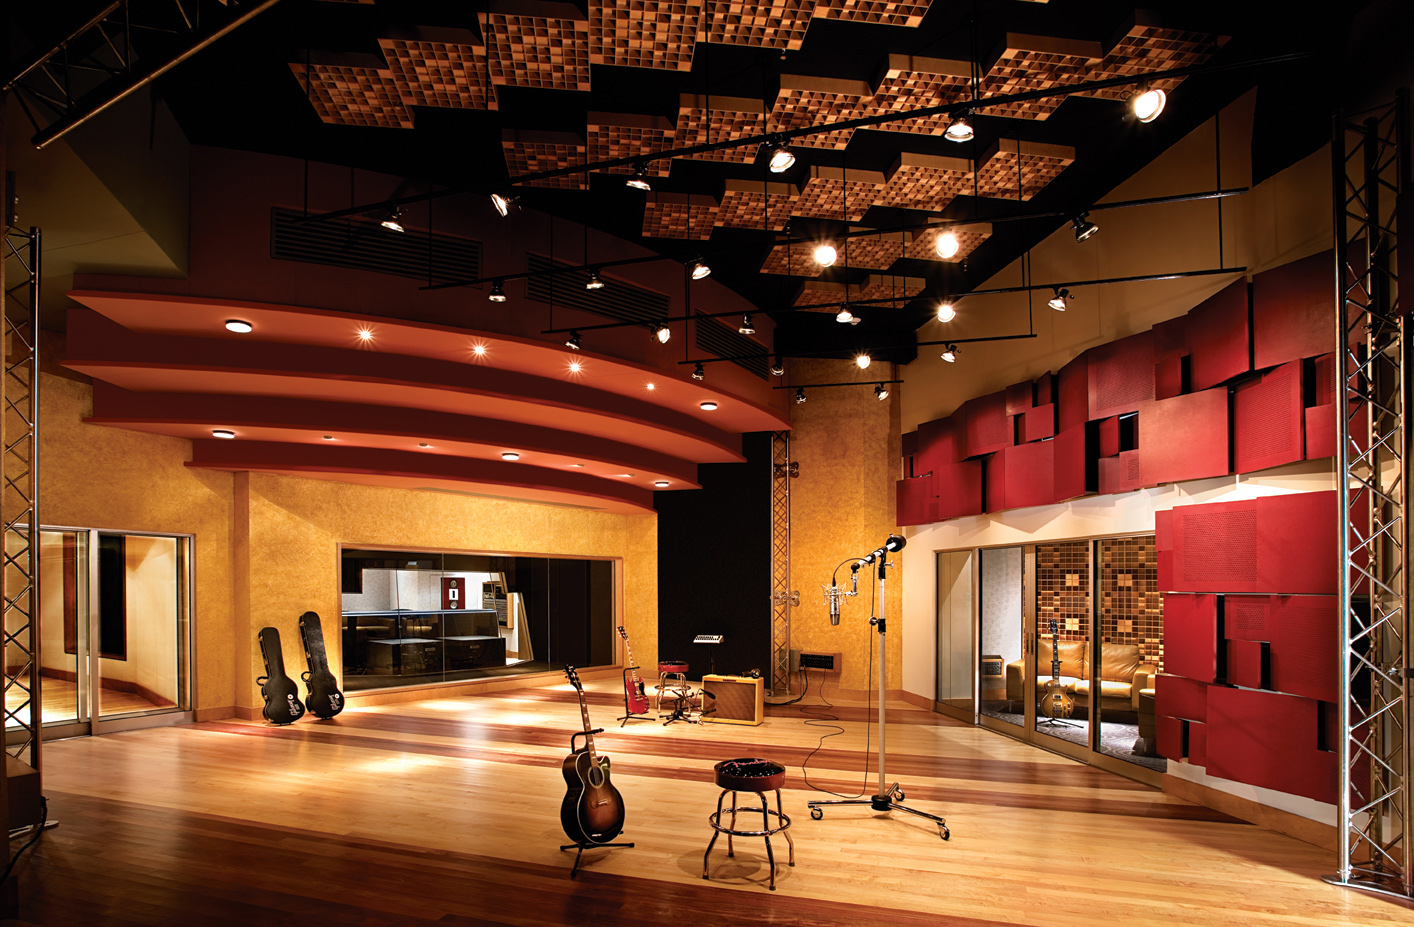 Photo Caption Studio X At The Las Vegas Based Palms Recently Upgraded With A New Avid Pro Tools HDX System Sourced And Supplied Through GC